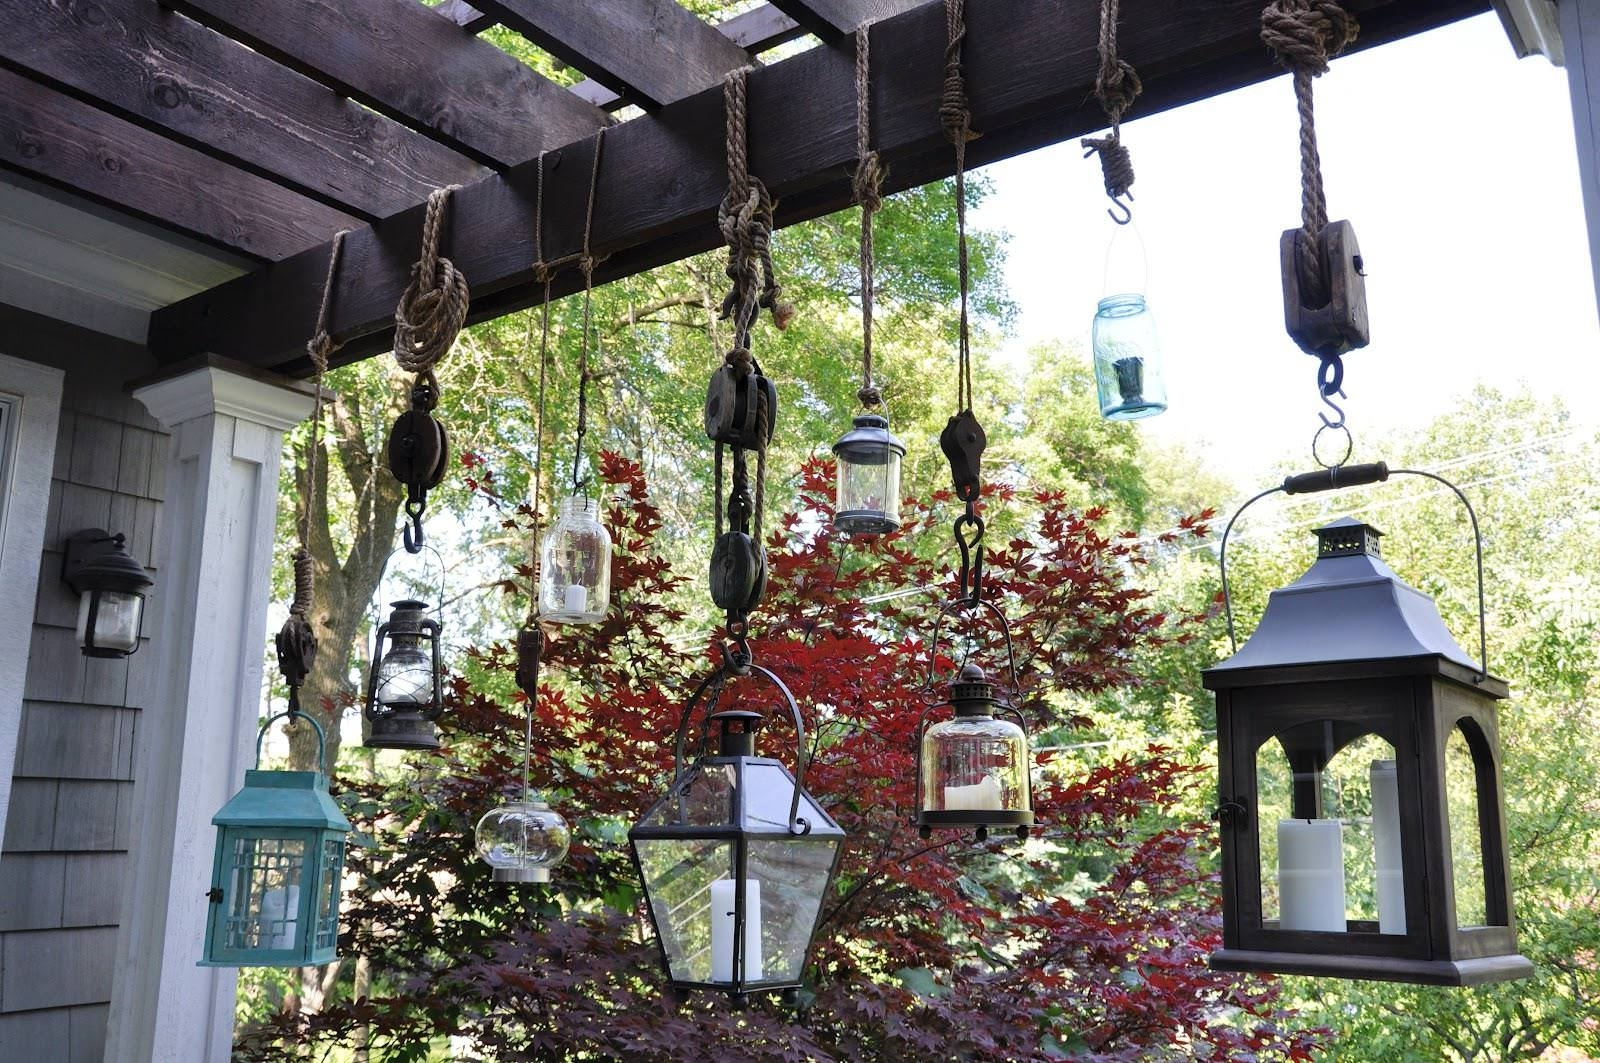 Emejing Hanging Lanterns Indoor Gallery – Decoration Design Ideas With Preferred Outdoor Hanging Lanterns With Candles (Gallery 18 of 20)